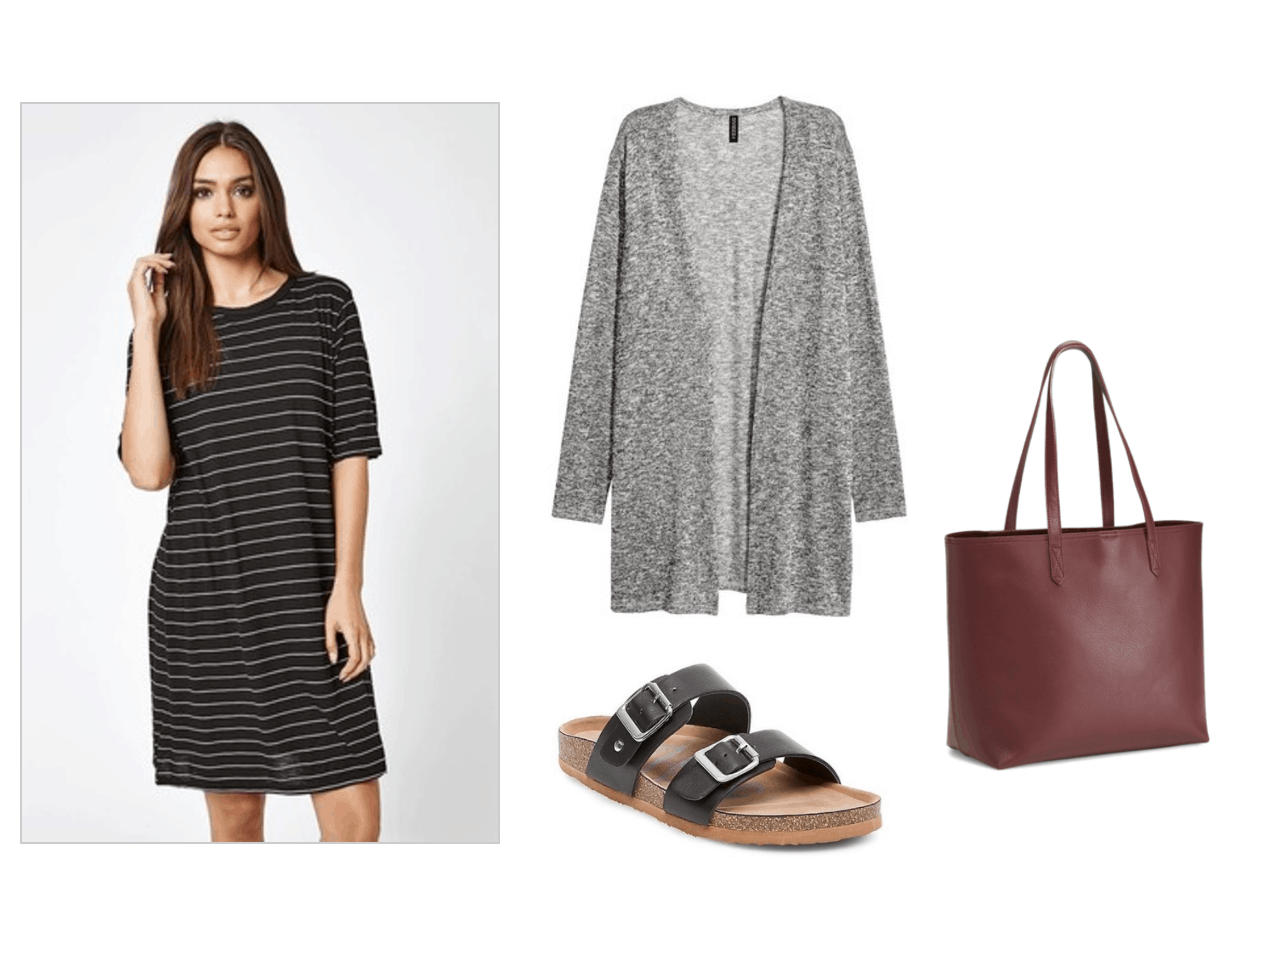 Summer to fall transition outfit under $100: Striped t-shirt dress, gray knit cardigan, footbed sandals, burgundy red tote bag